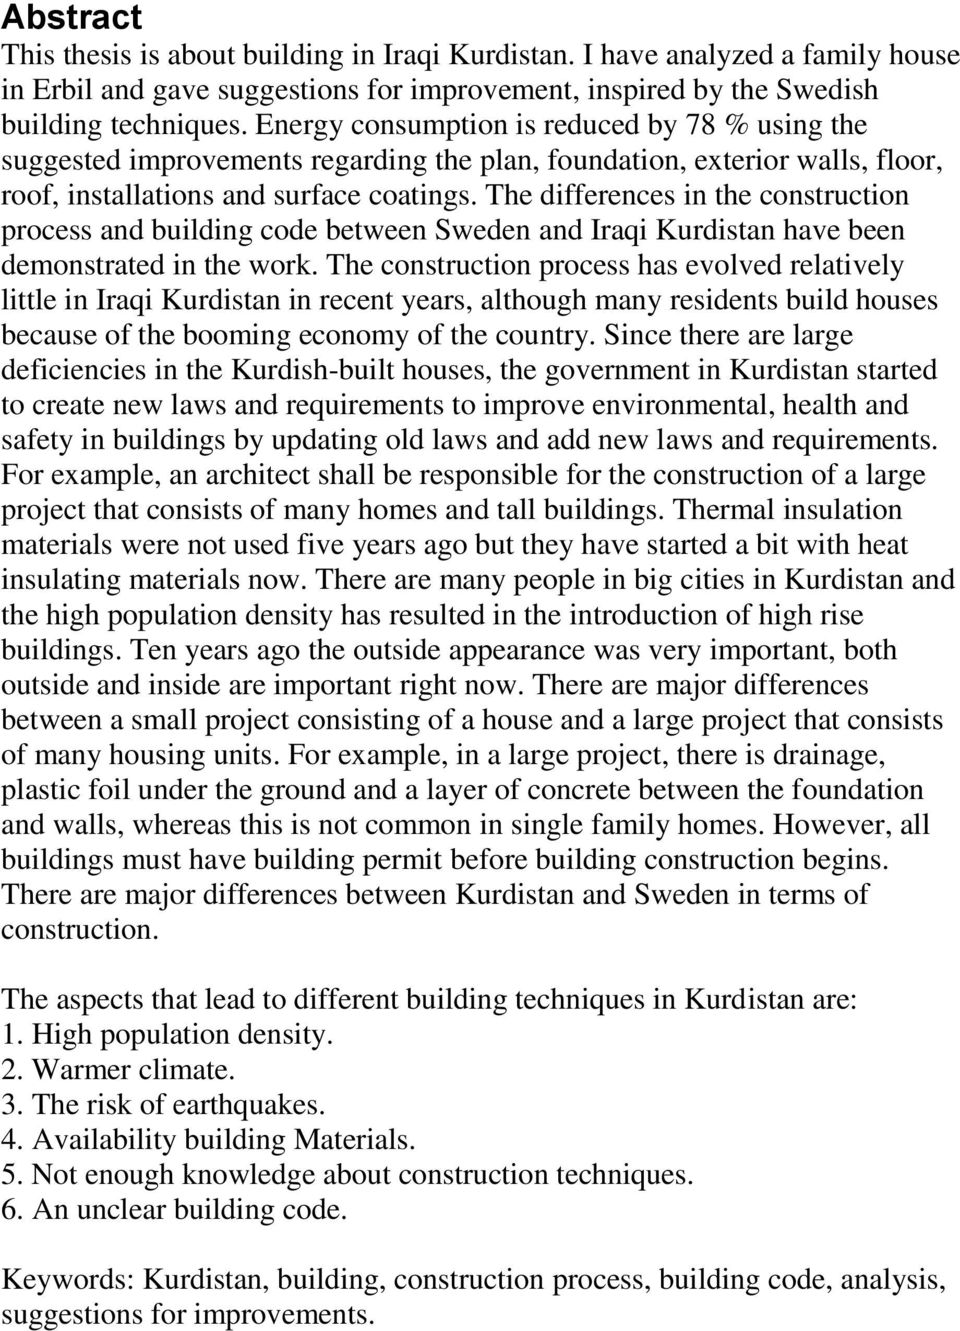 The differences in the construction process and building code between Sweden and Iraqi Kurdistan have been demonstrated in the work.